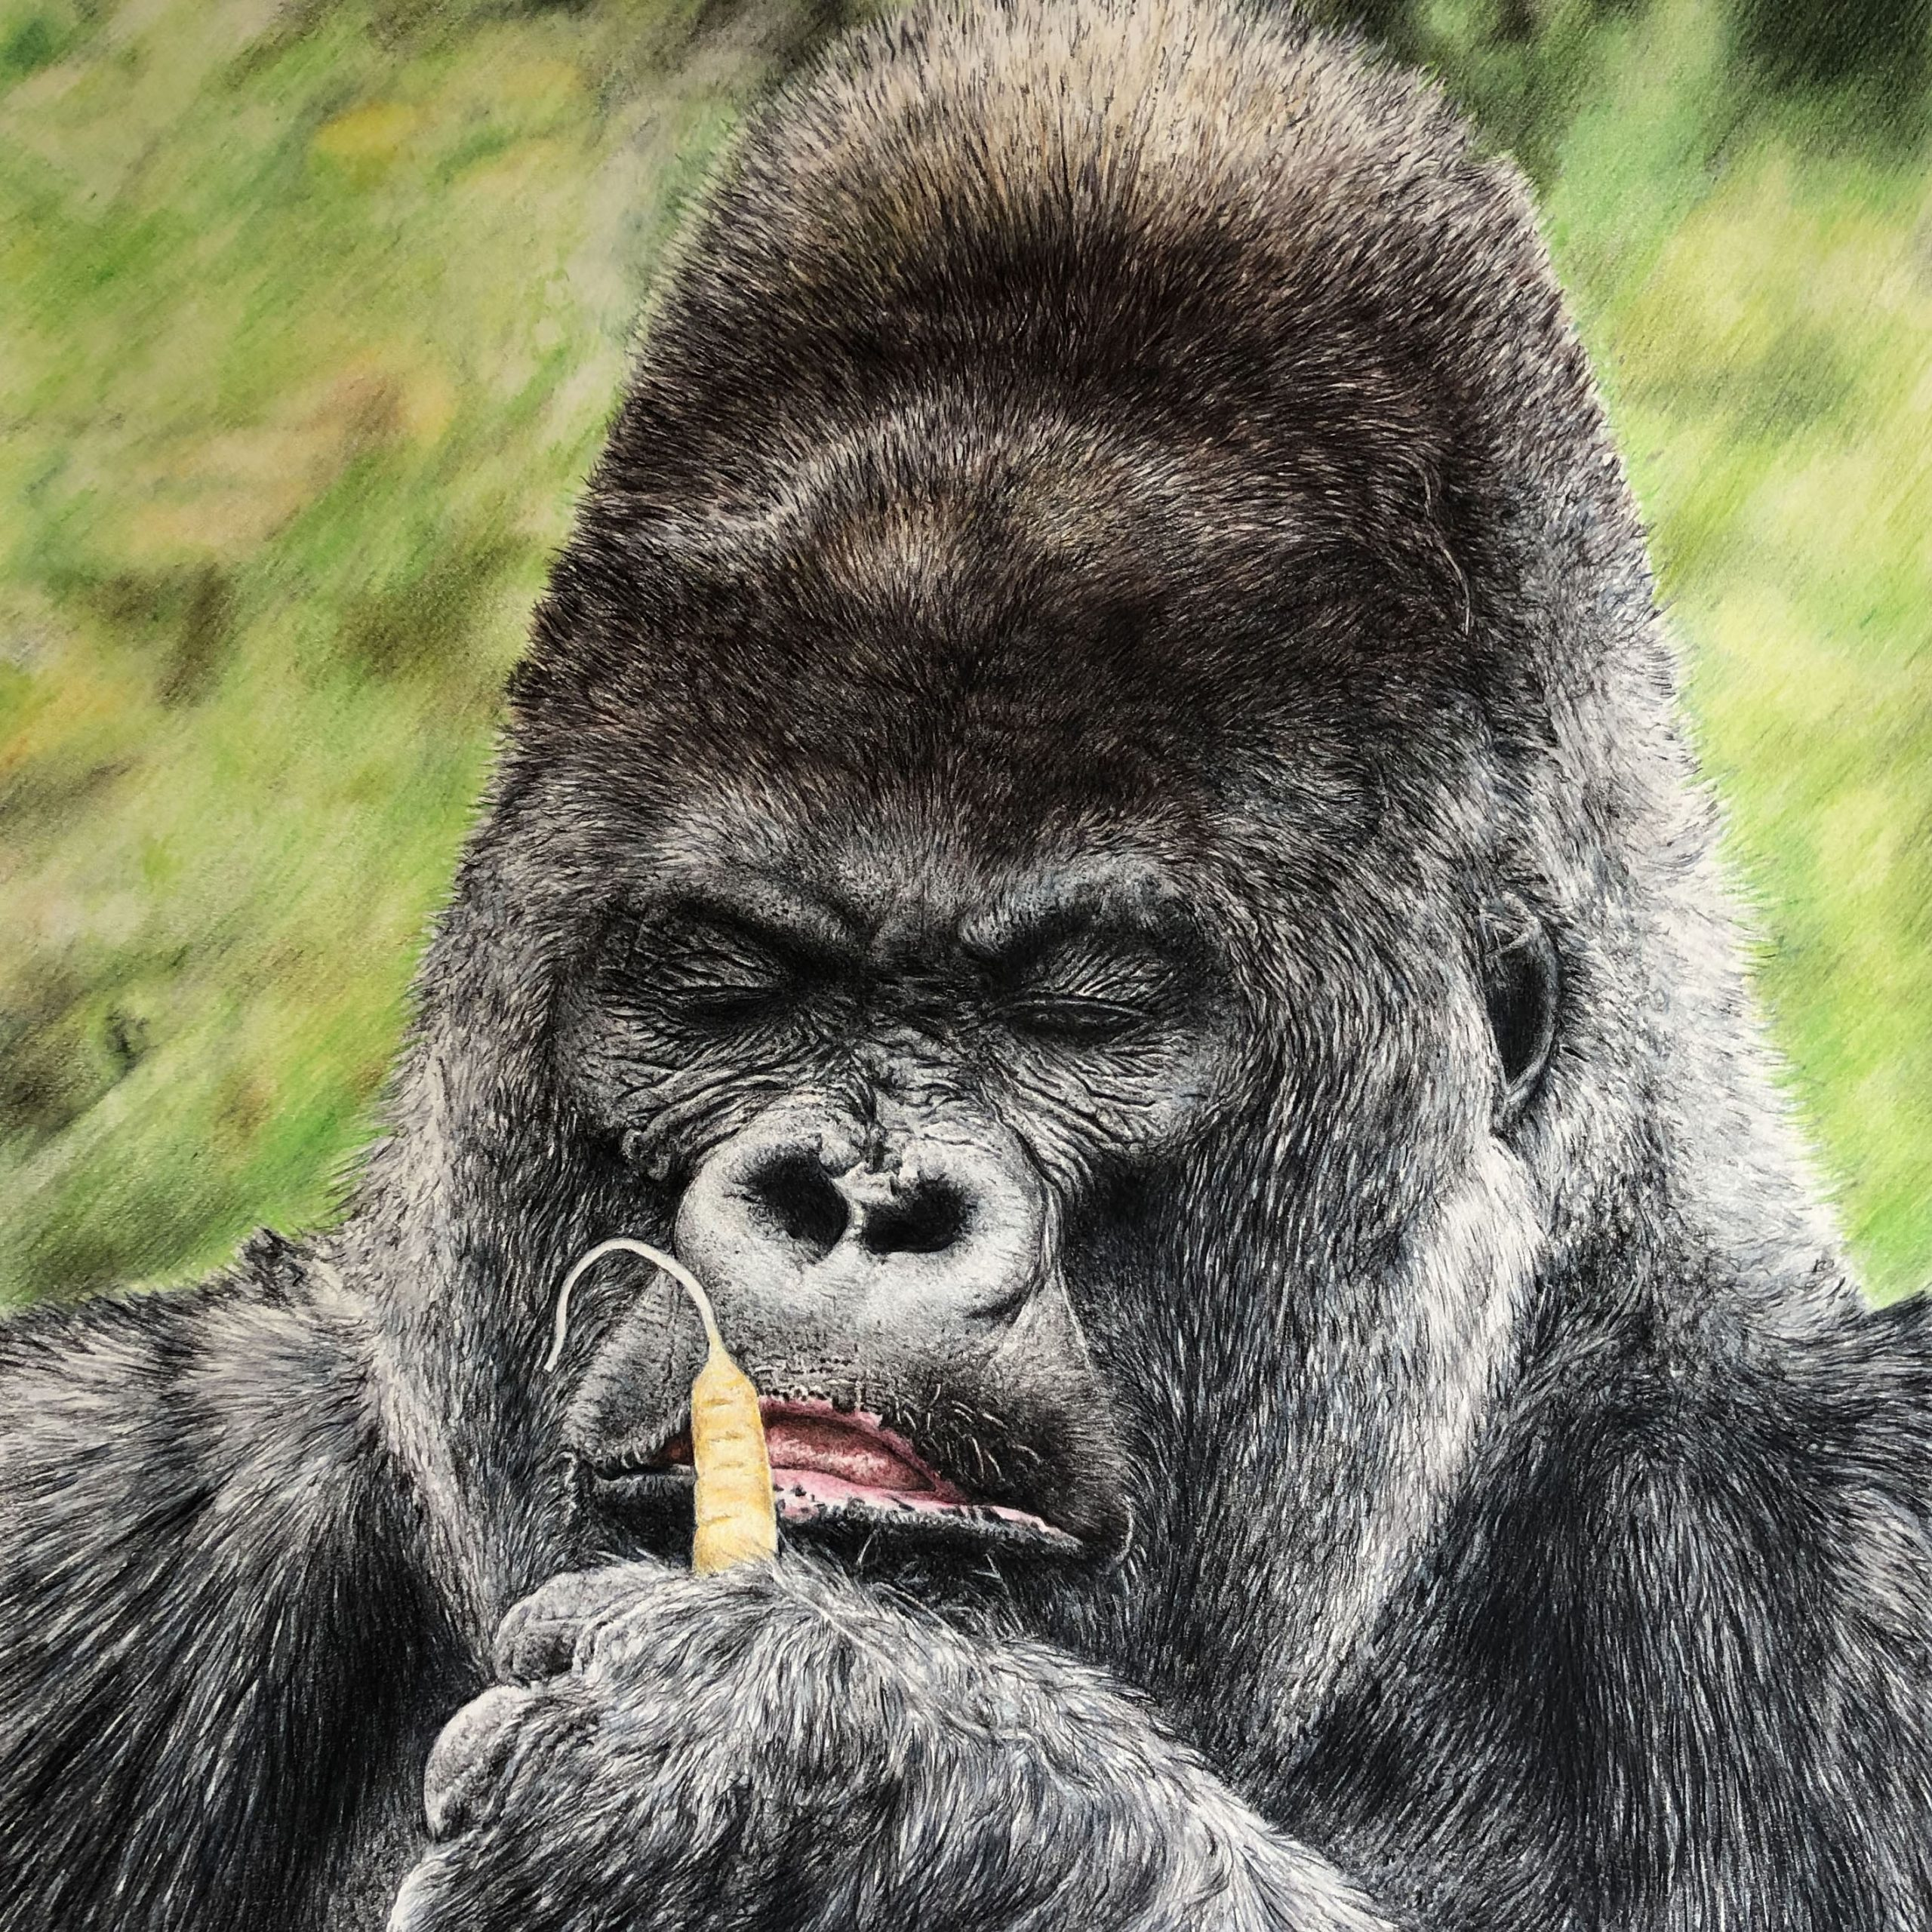 Full colour Wildlife pencil drawing of Nico the gorilla